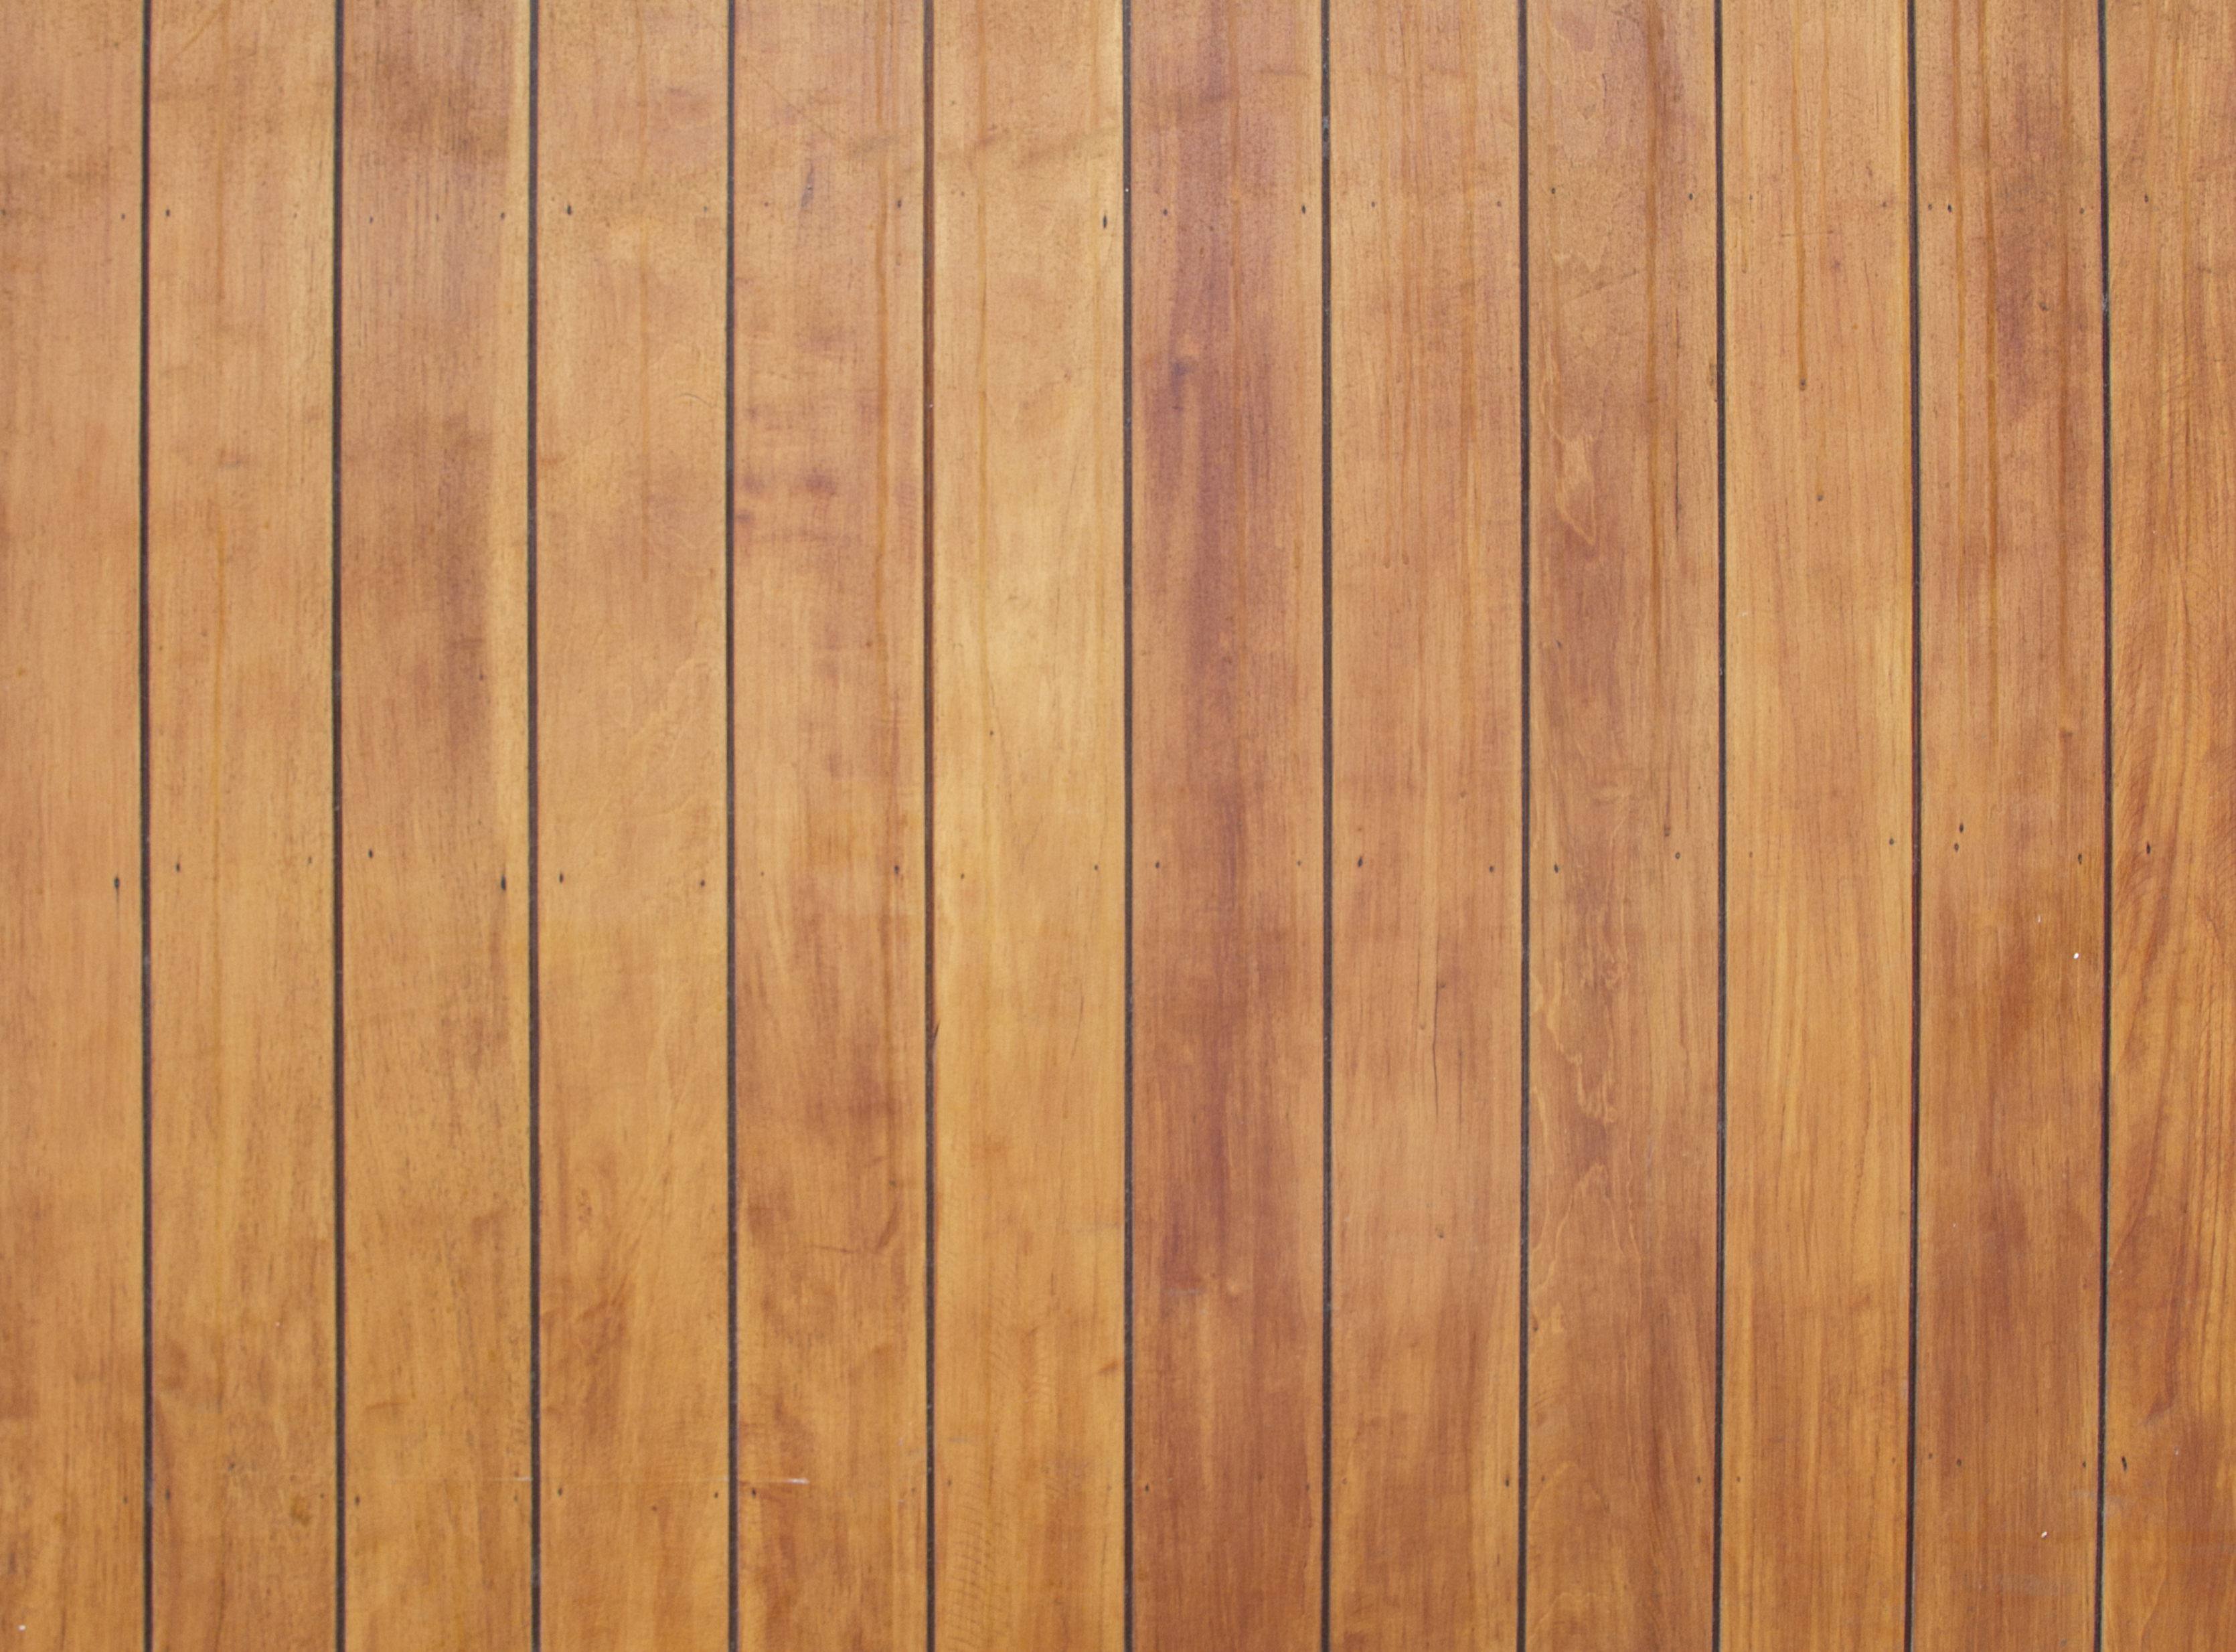 Free Photo Wooden Panel Texture Tree Wall Wood Free